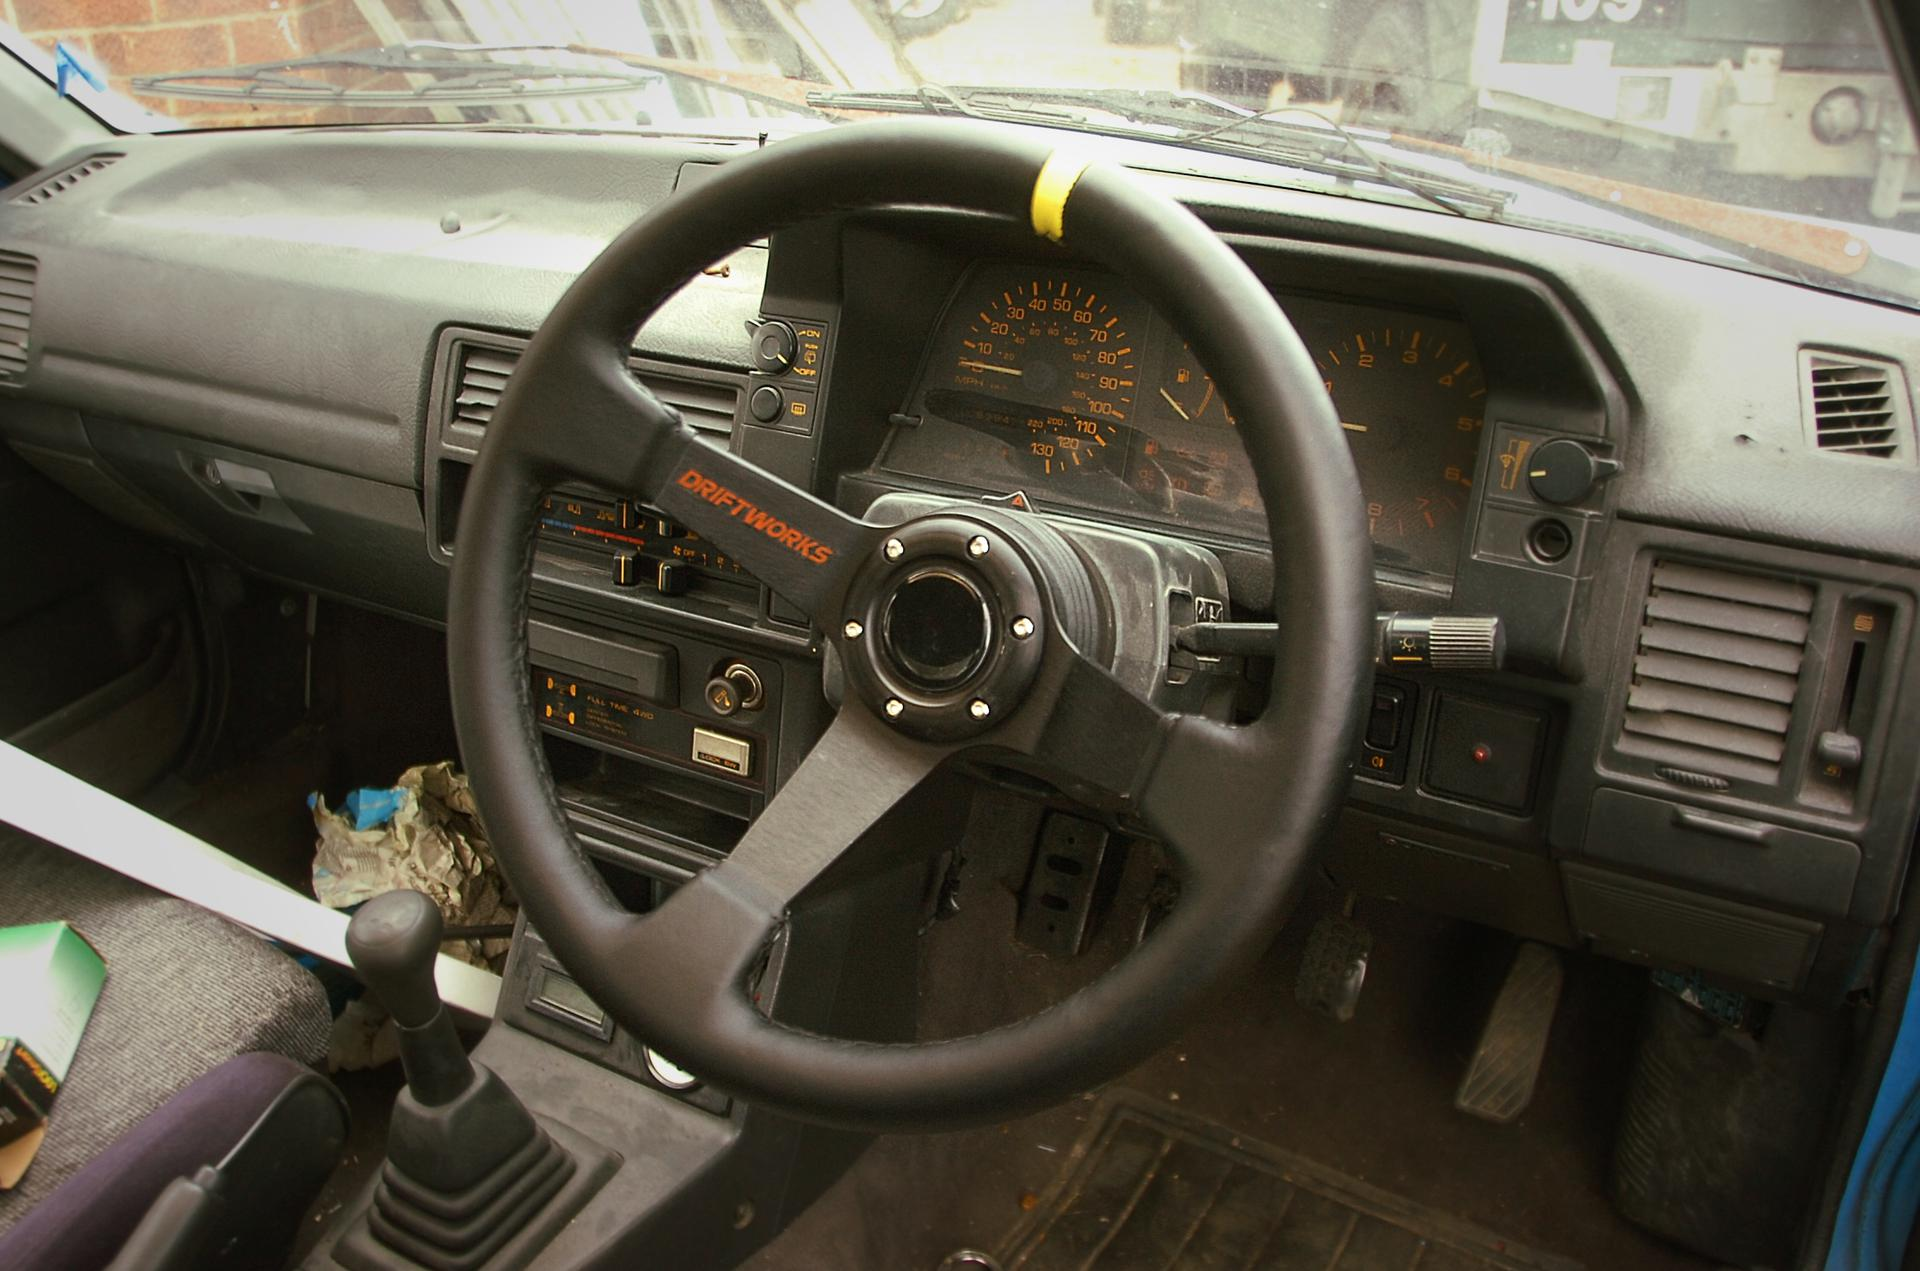 Driftworks leather steering wheel in Mazda 323 GTX interior